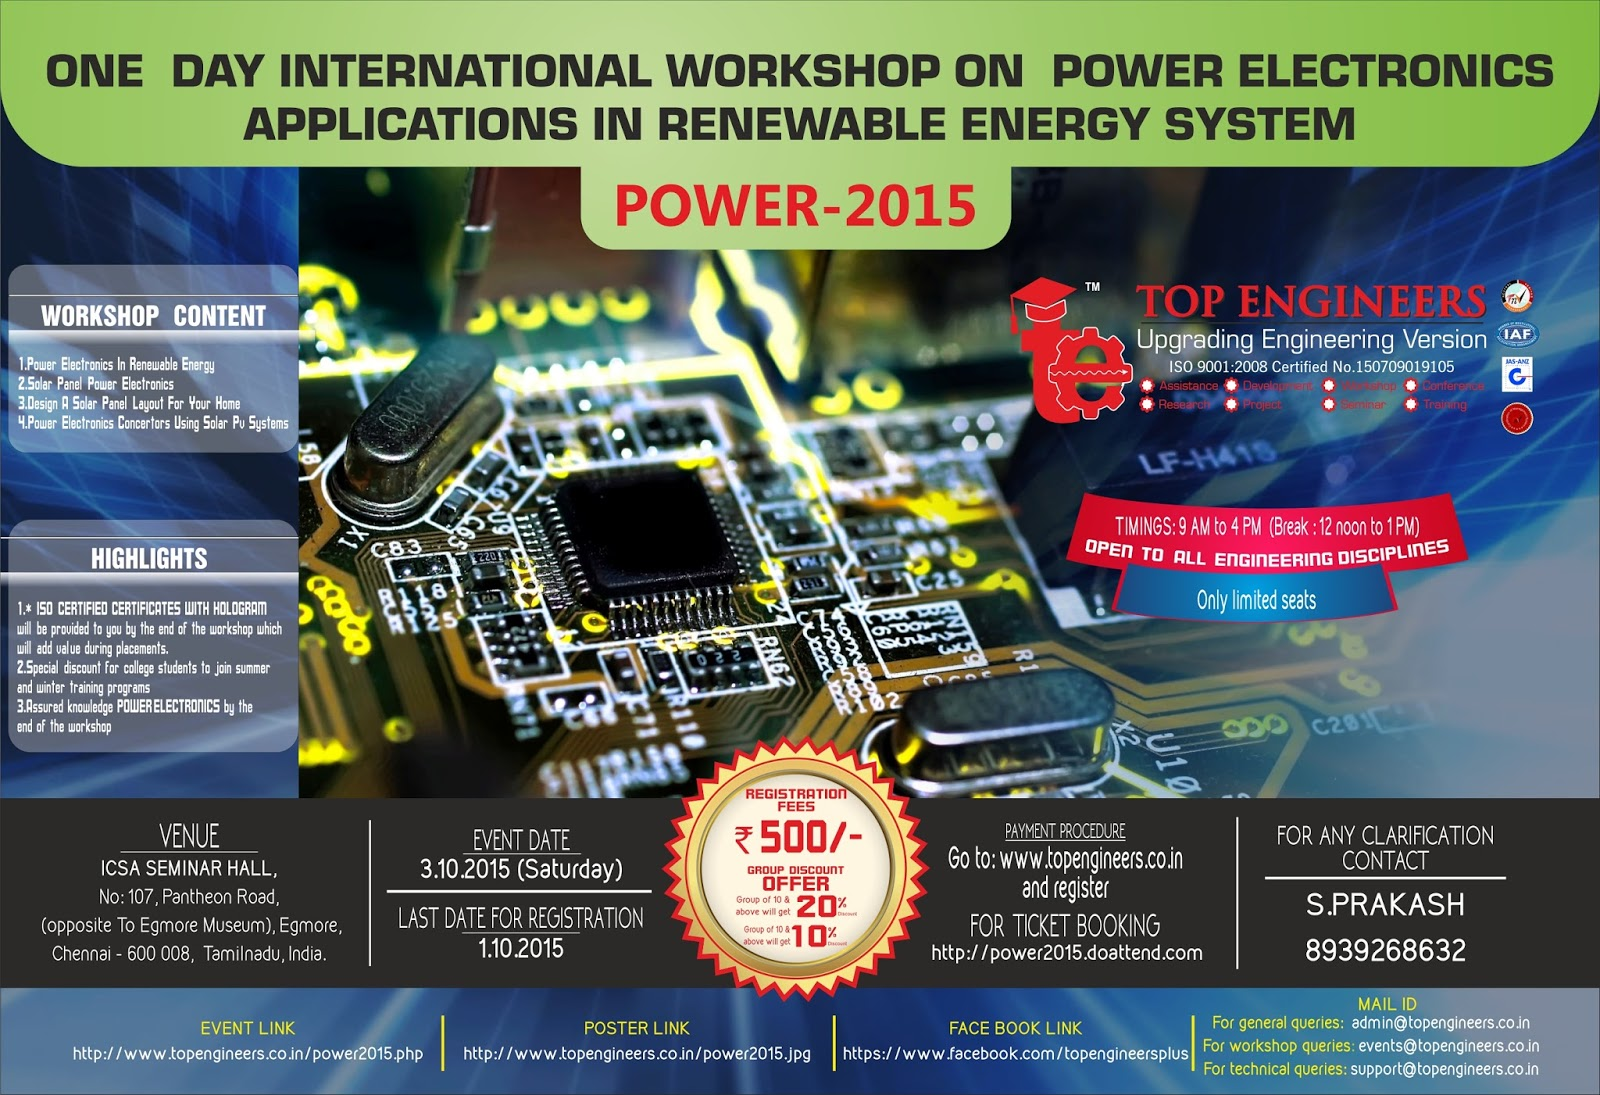 One Day International Workshop on Power Electronics Applications in Renewable Energy System (Power-2015)